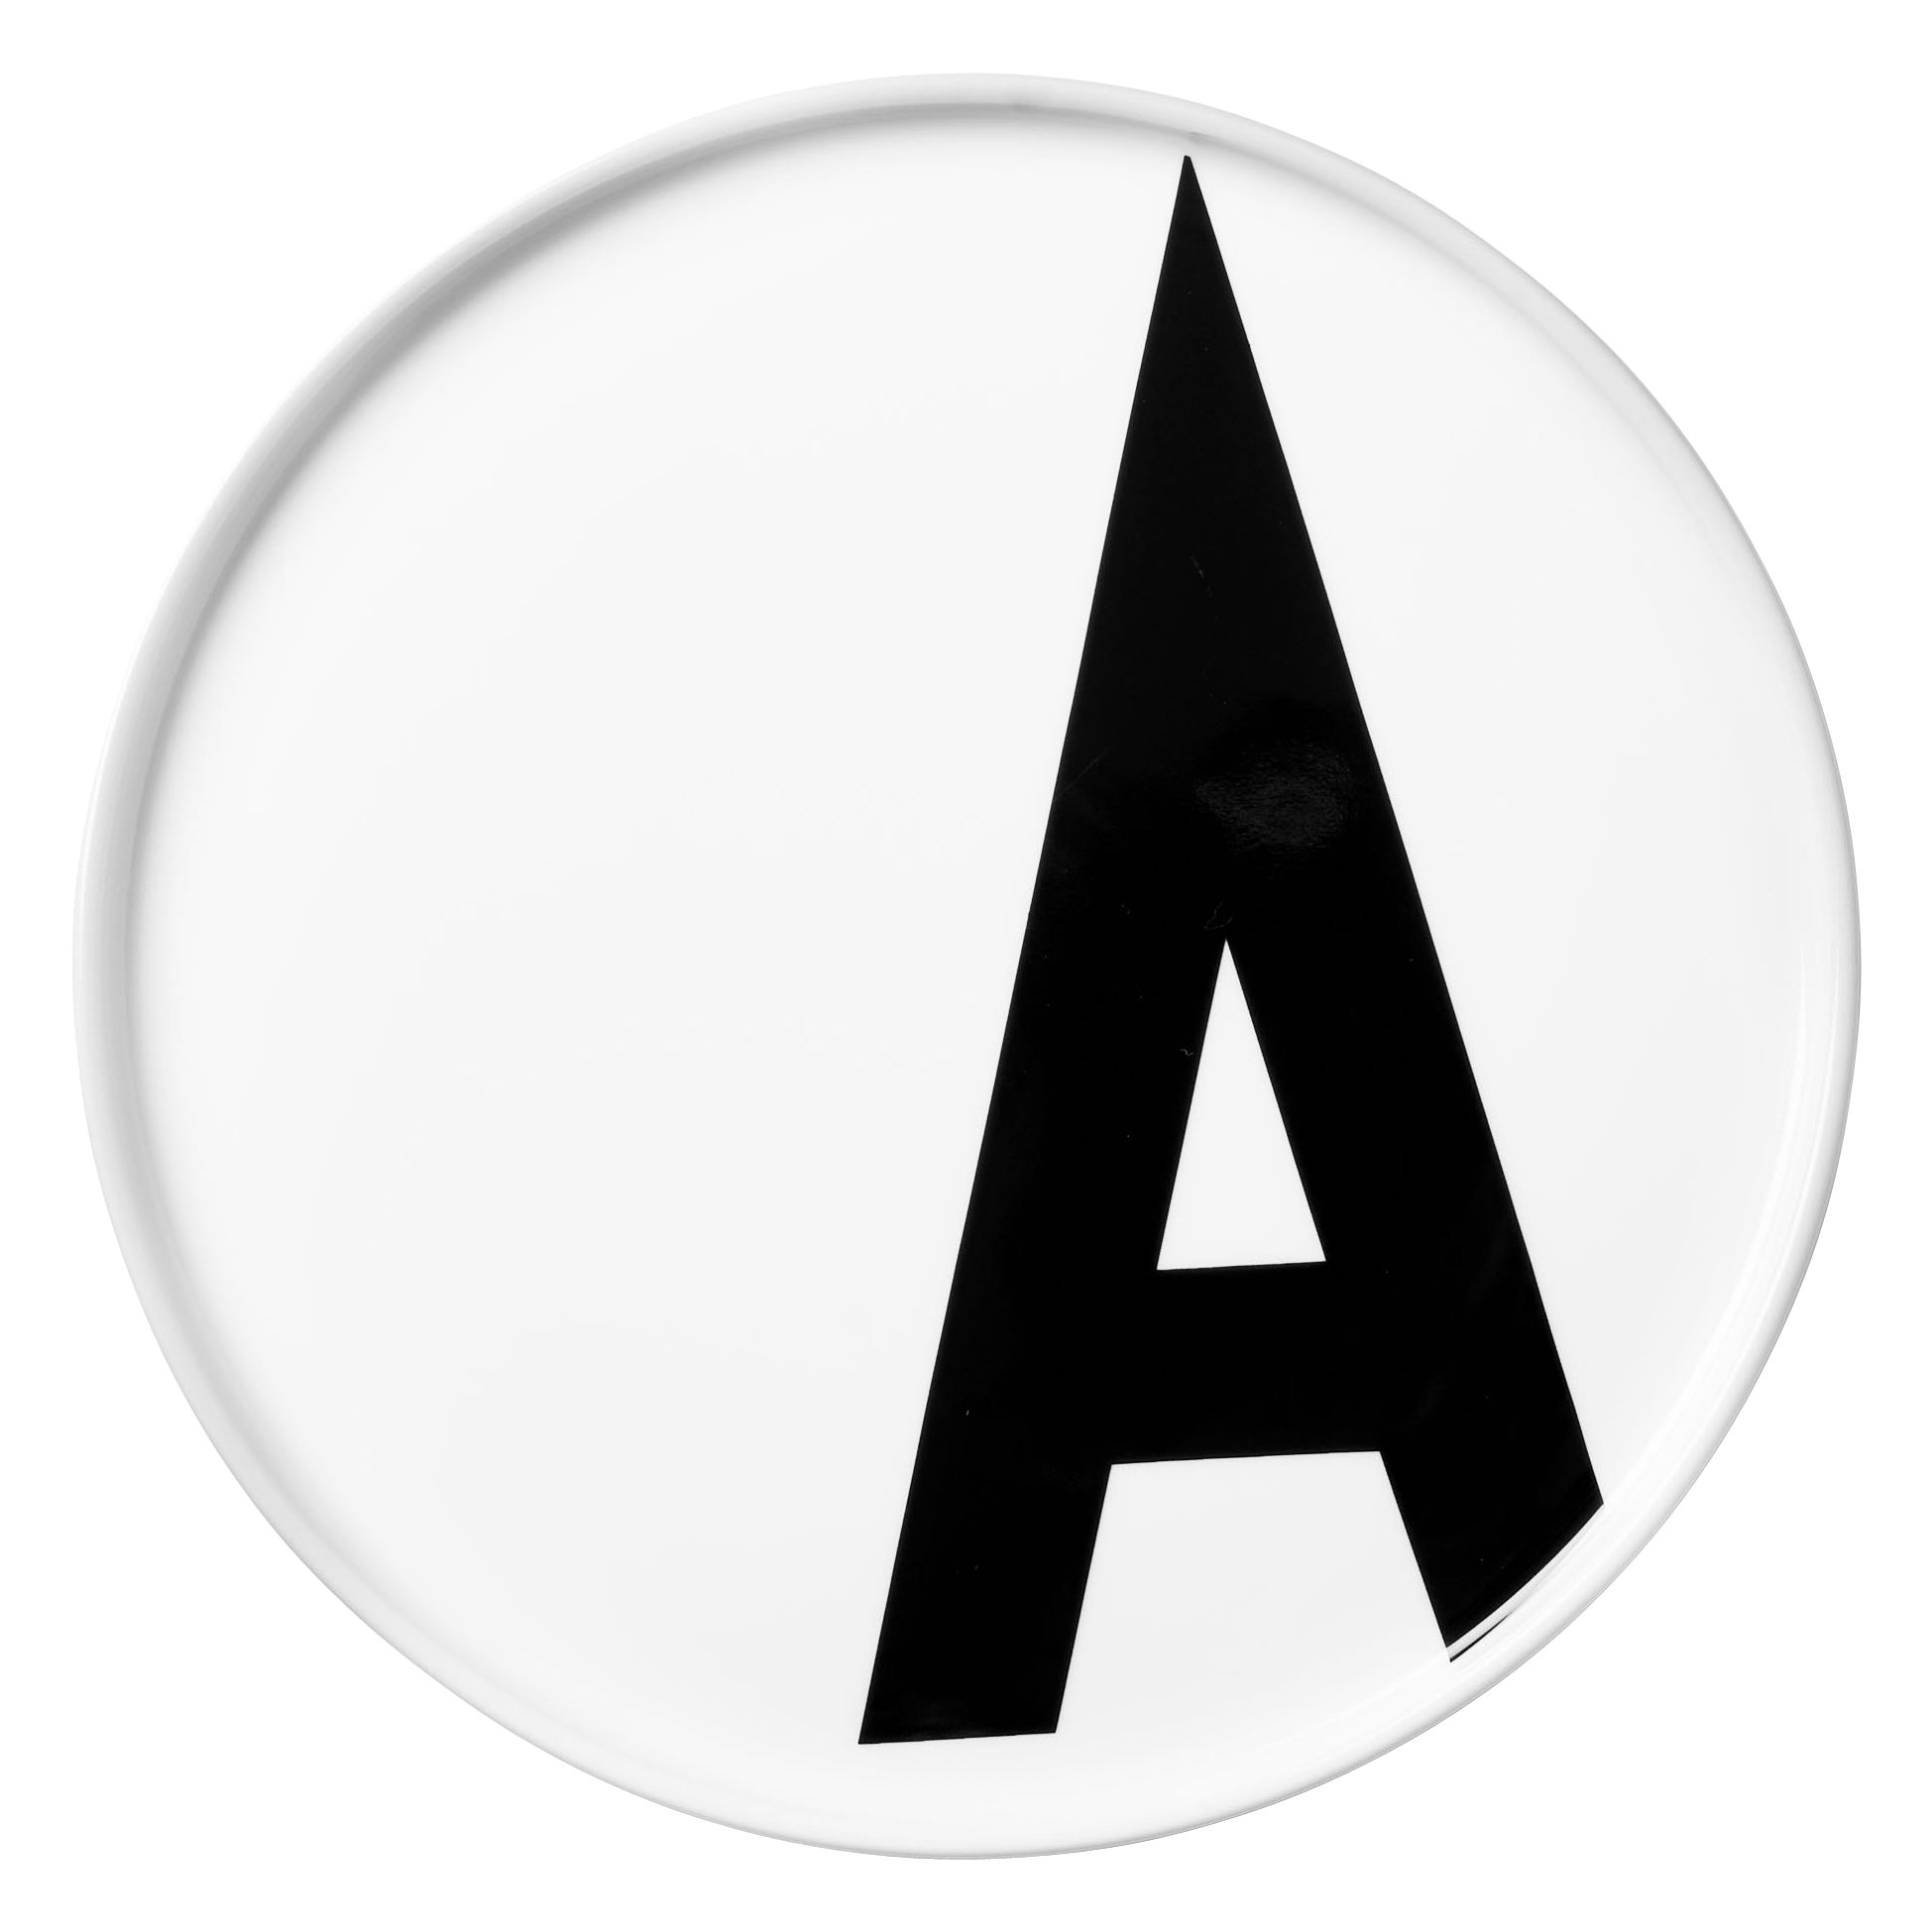 Tableware - Plates - A-Z Plate - Porcelain - A by Design Letters - White / A - China